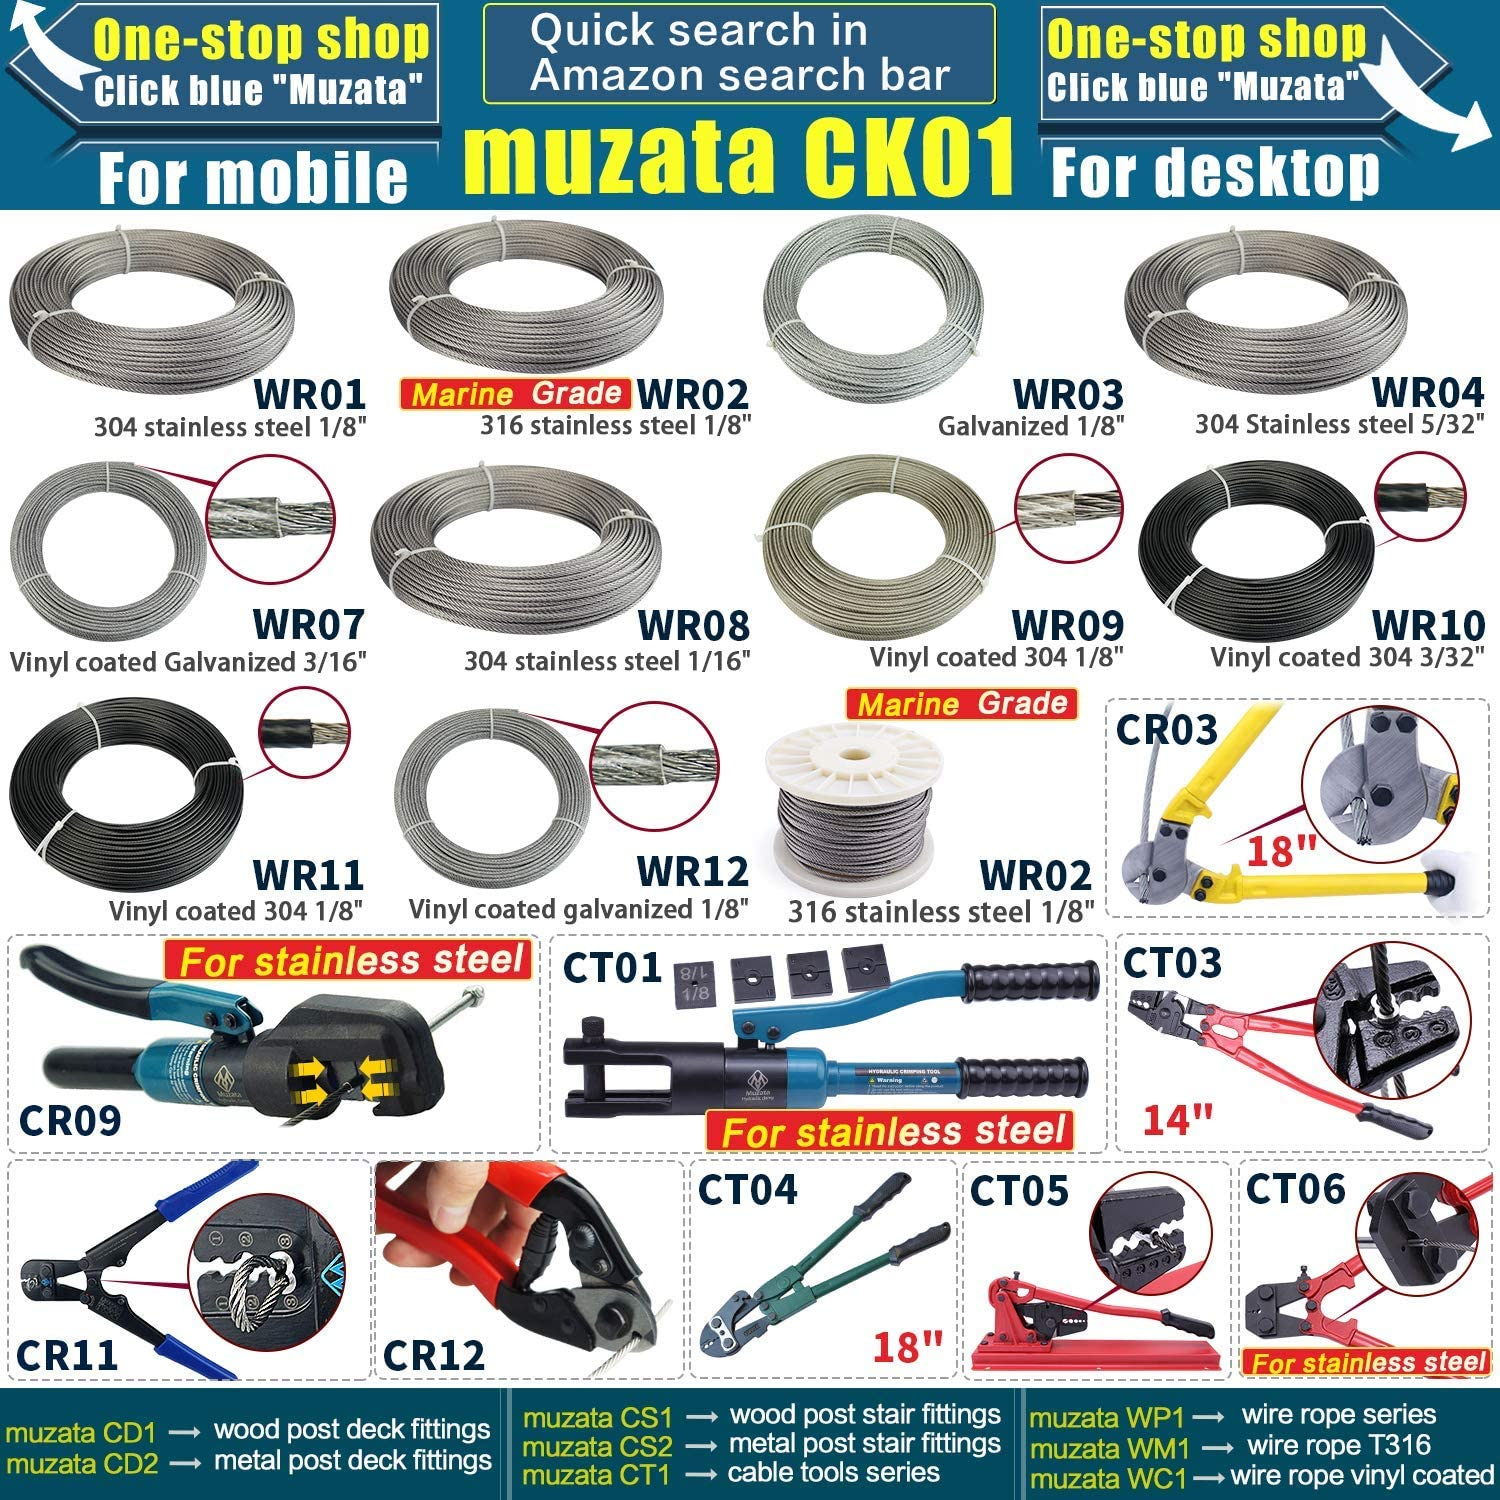 Muzata 12 Pairs Stainless Steel Cable Railing Kit Systems Fit 1//8 Wire Rope,Angled 180/° Adjustable Swage Toggle Turnbuckle Tensioner and End Fititing,T316 Marine Grade,CK07,Series CA1 CD1 CS1